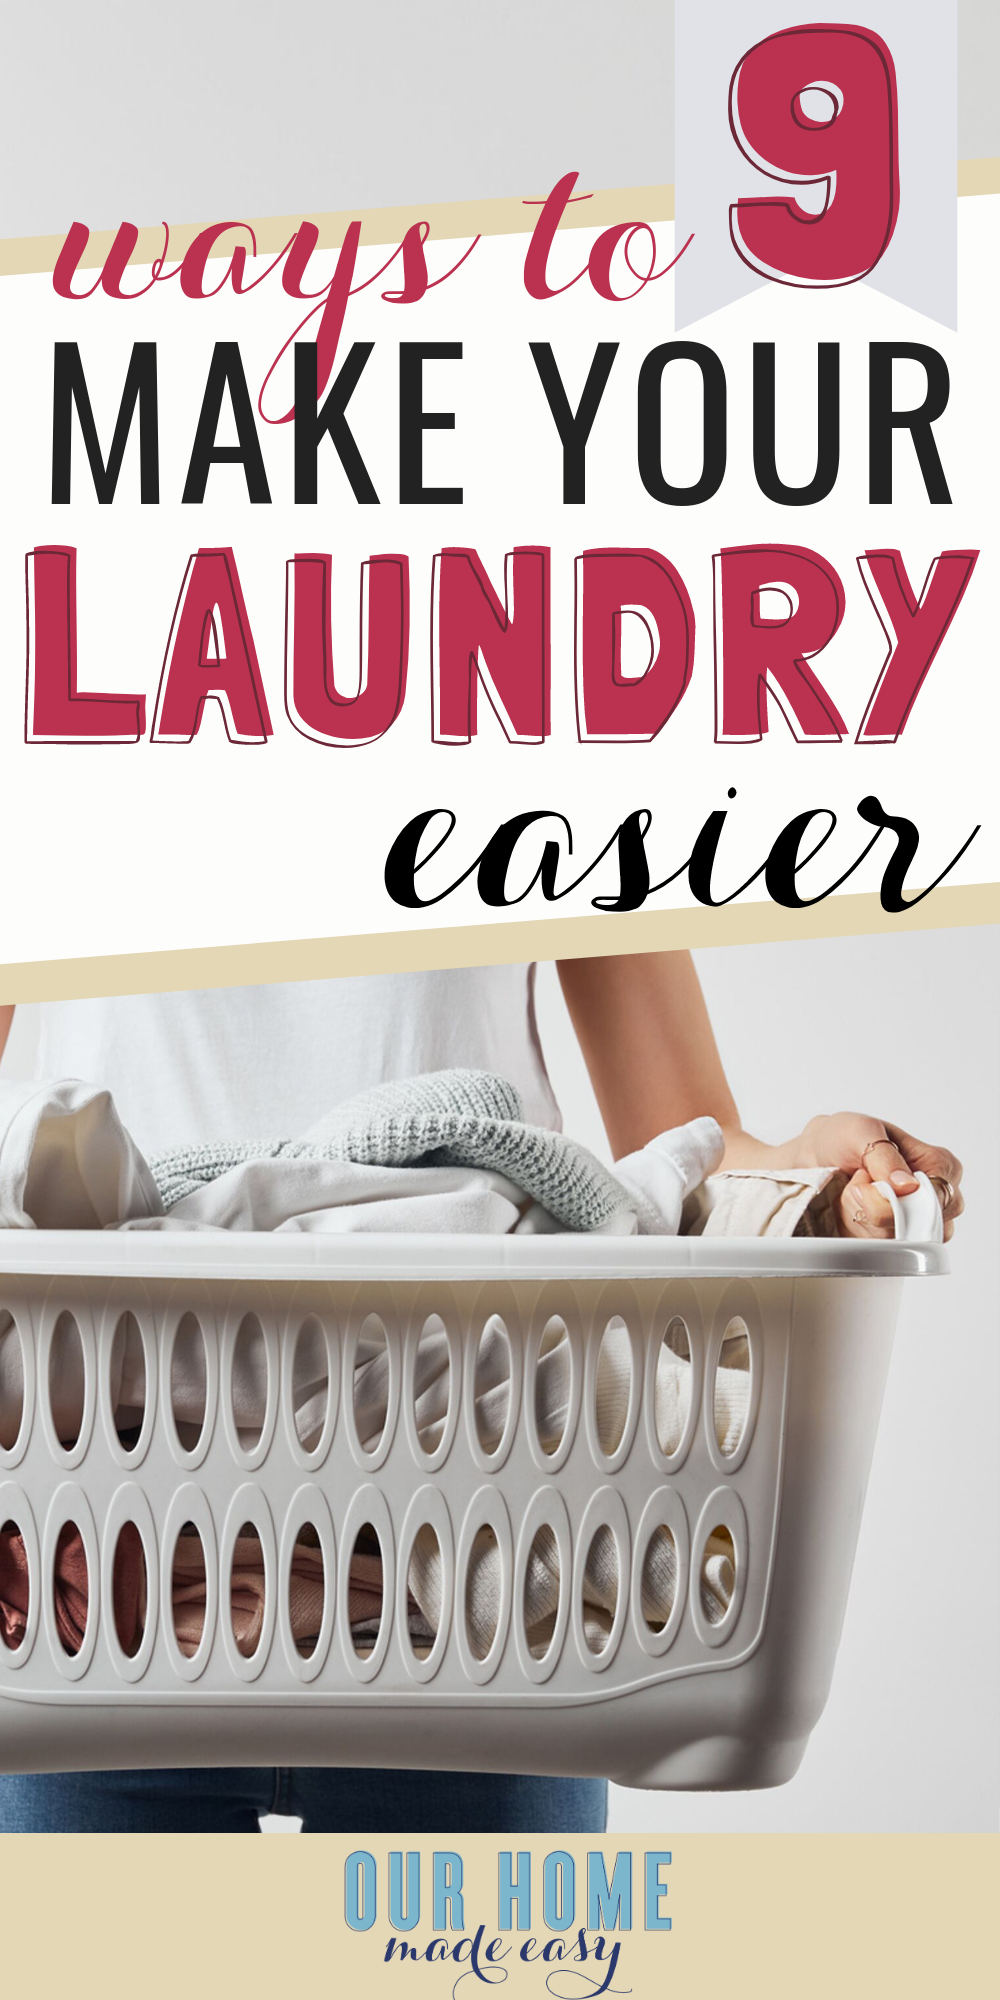 9 ways to make your laundry easier: mom-approved tips to take the stress out of laundry day